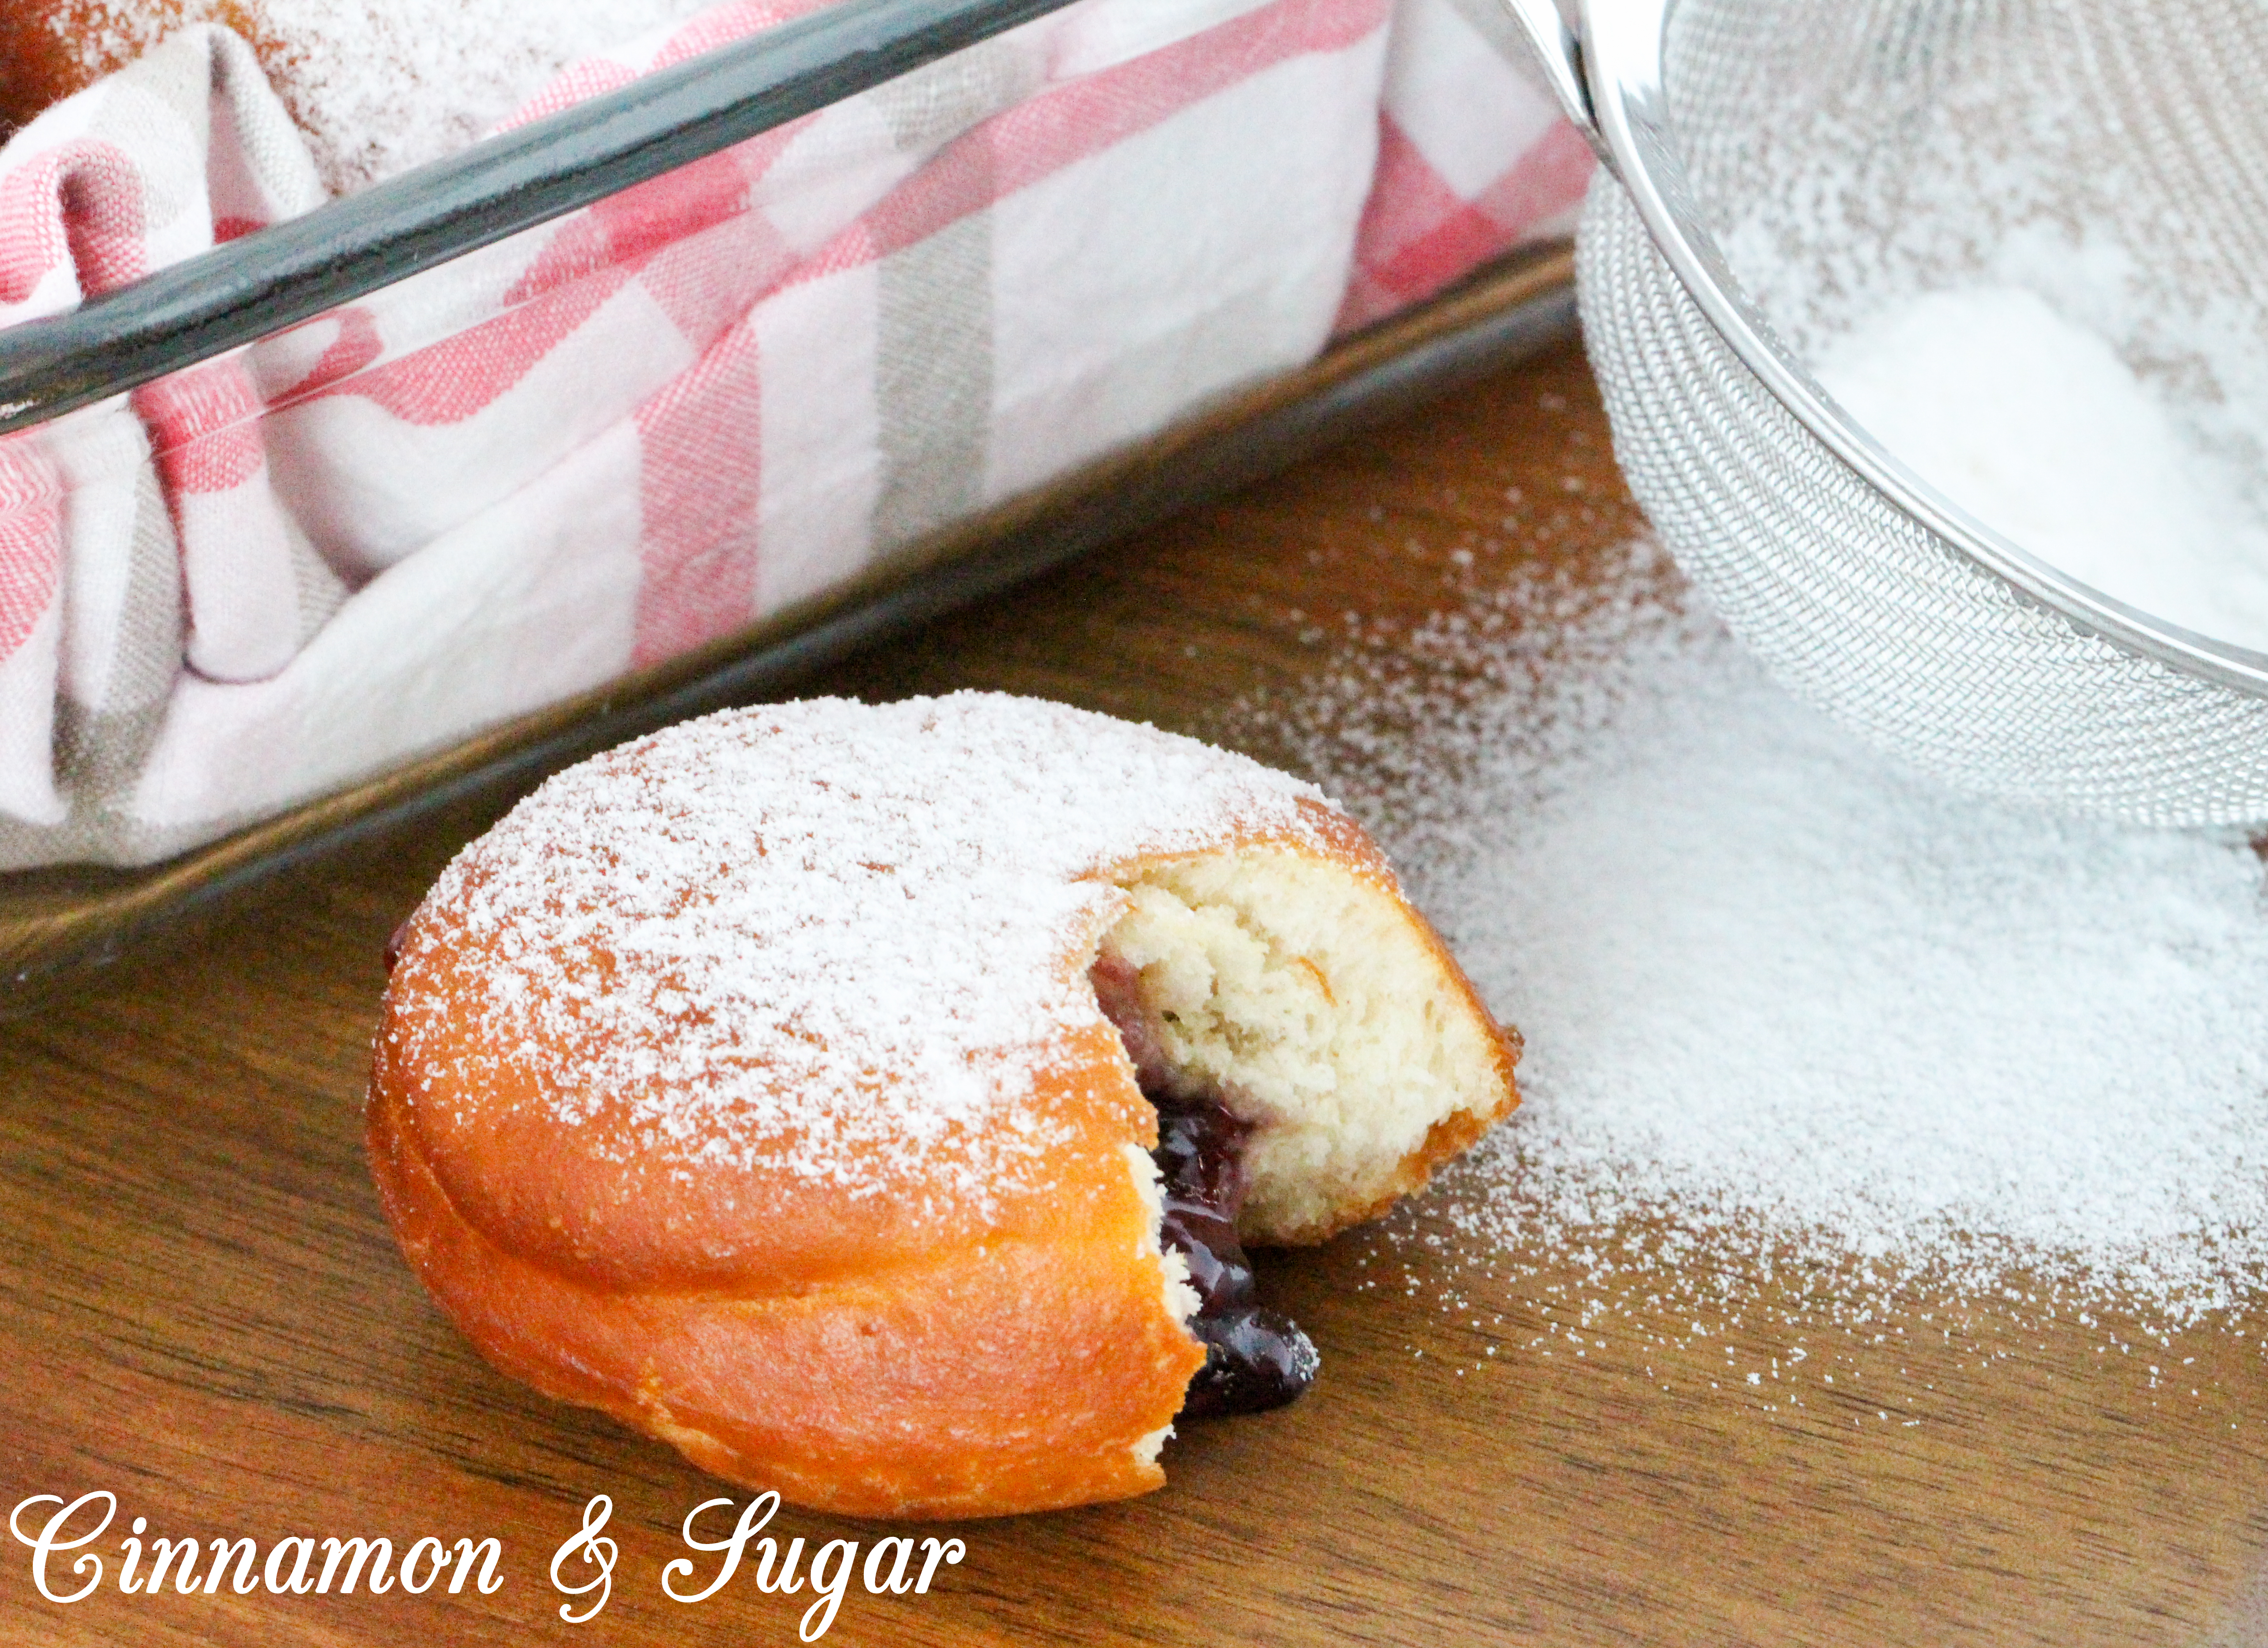 Jelly-Filled Donuts